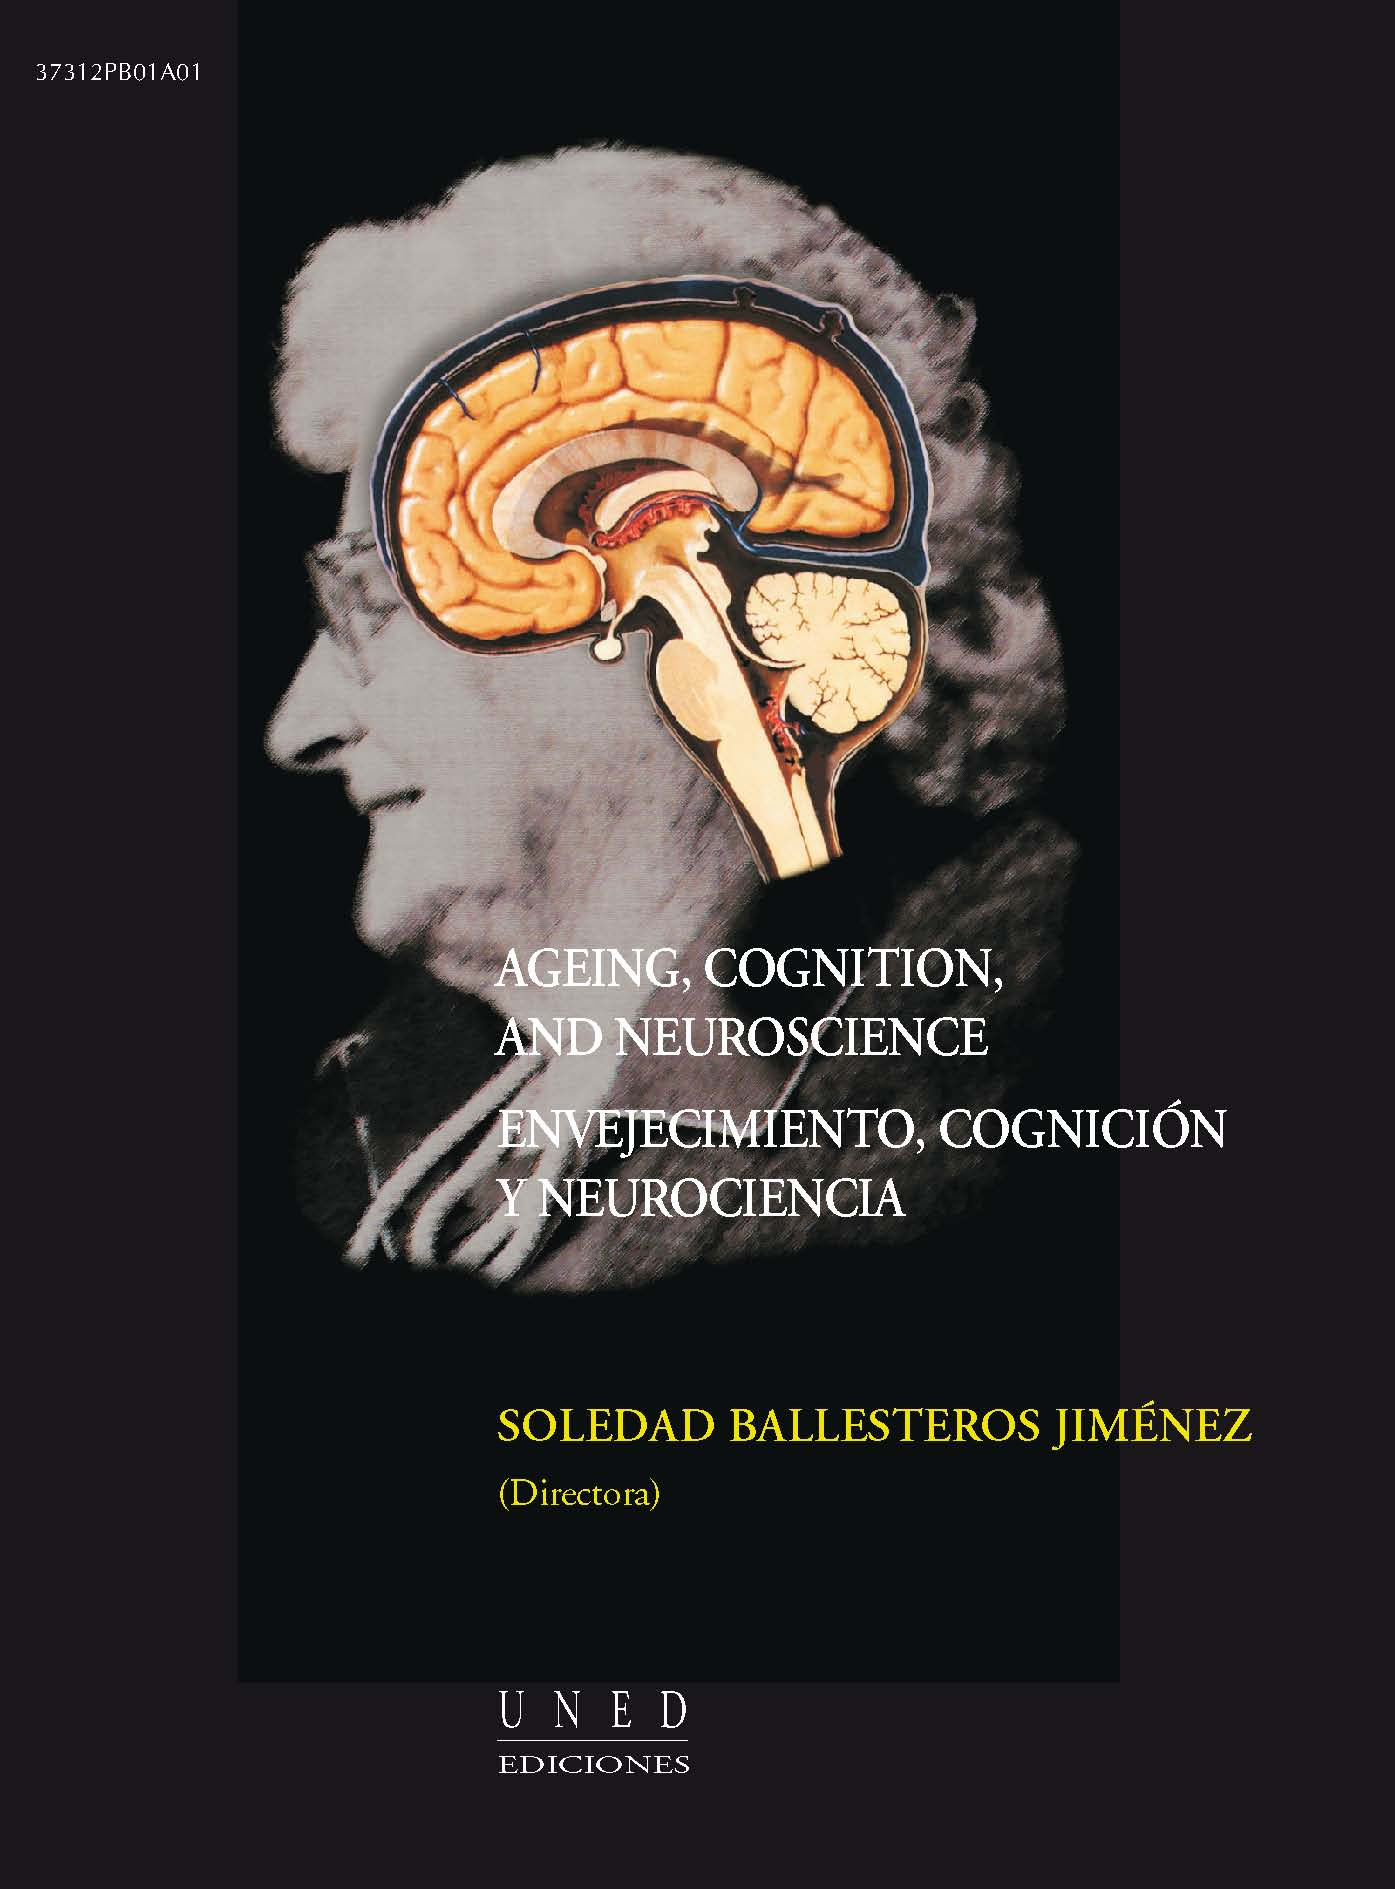 AGEING, COGNITION, AND NEUROSCIENCE. ENVEJECIMIENTO, COGNICIÓN Y NEUROCIENCIA